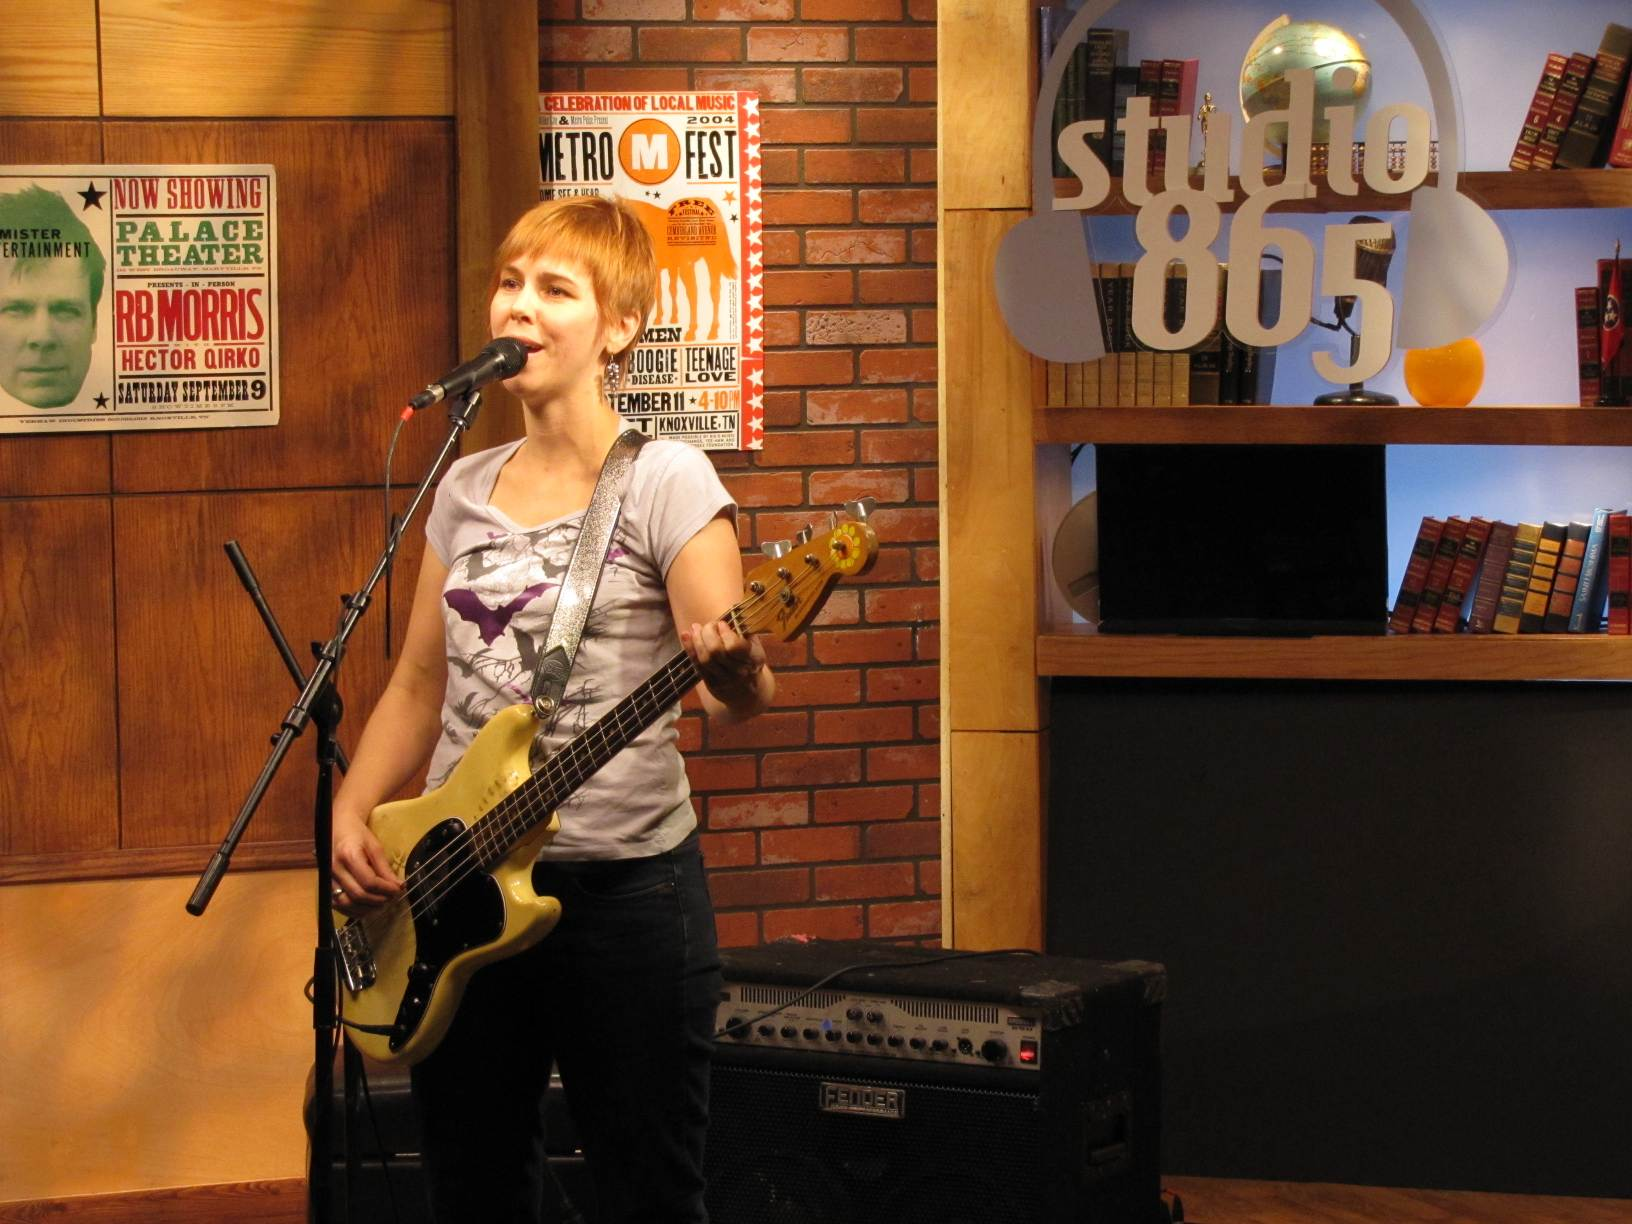 Kay Stanton performs on Studio 865.